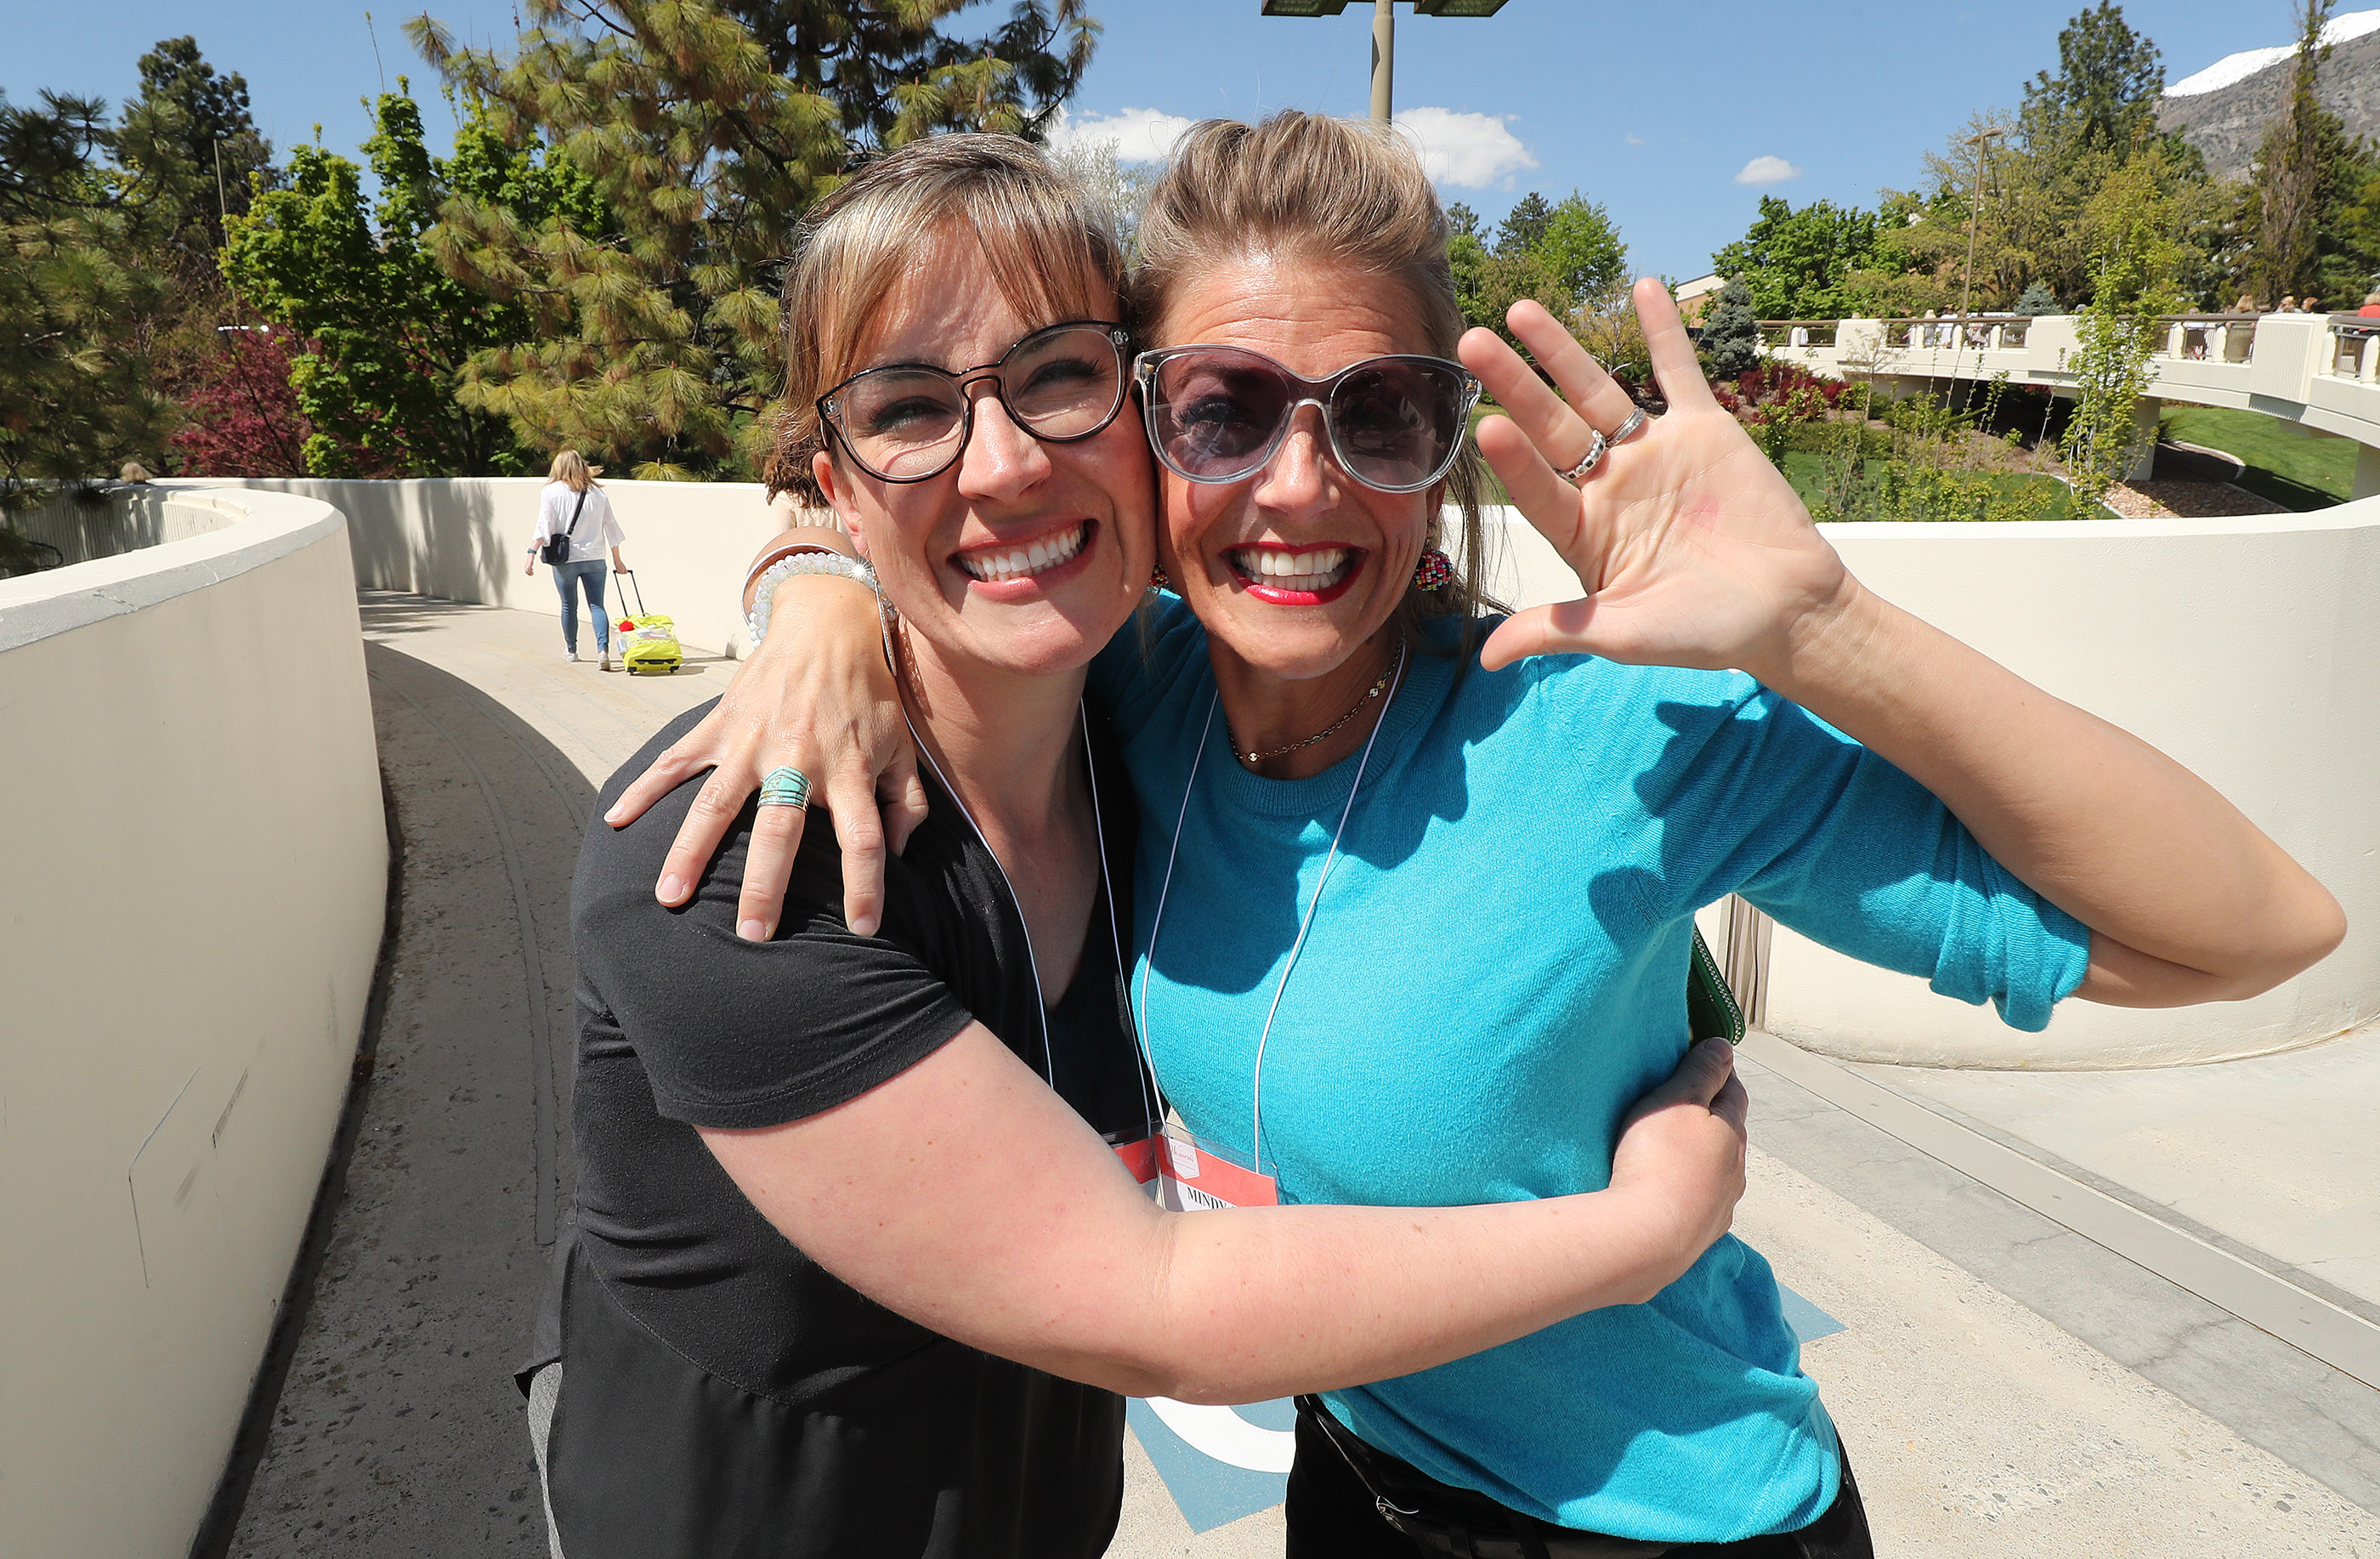 Jessica Edwards and Mindy Jo Choate pose during BYU Women's Conference in Provo on Friday, May 3, 2019.